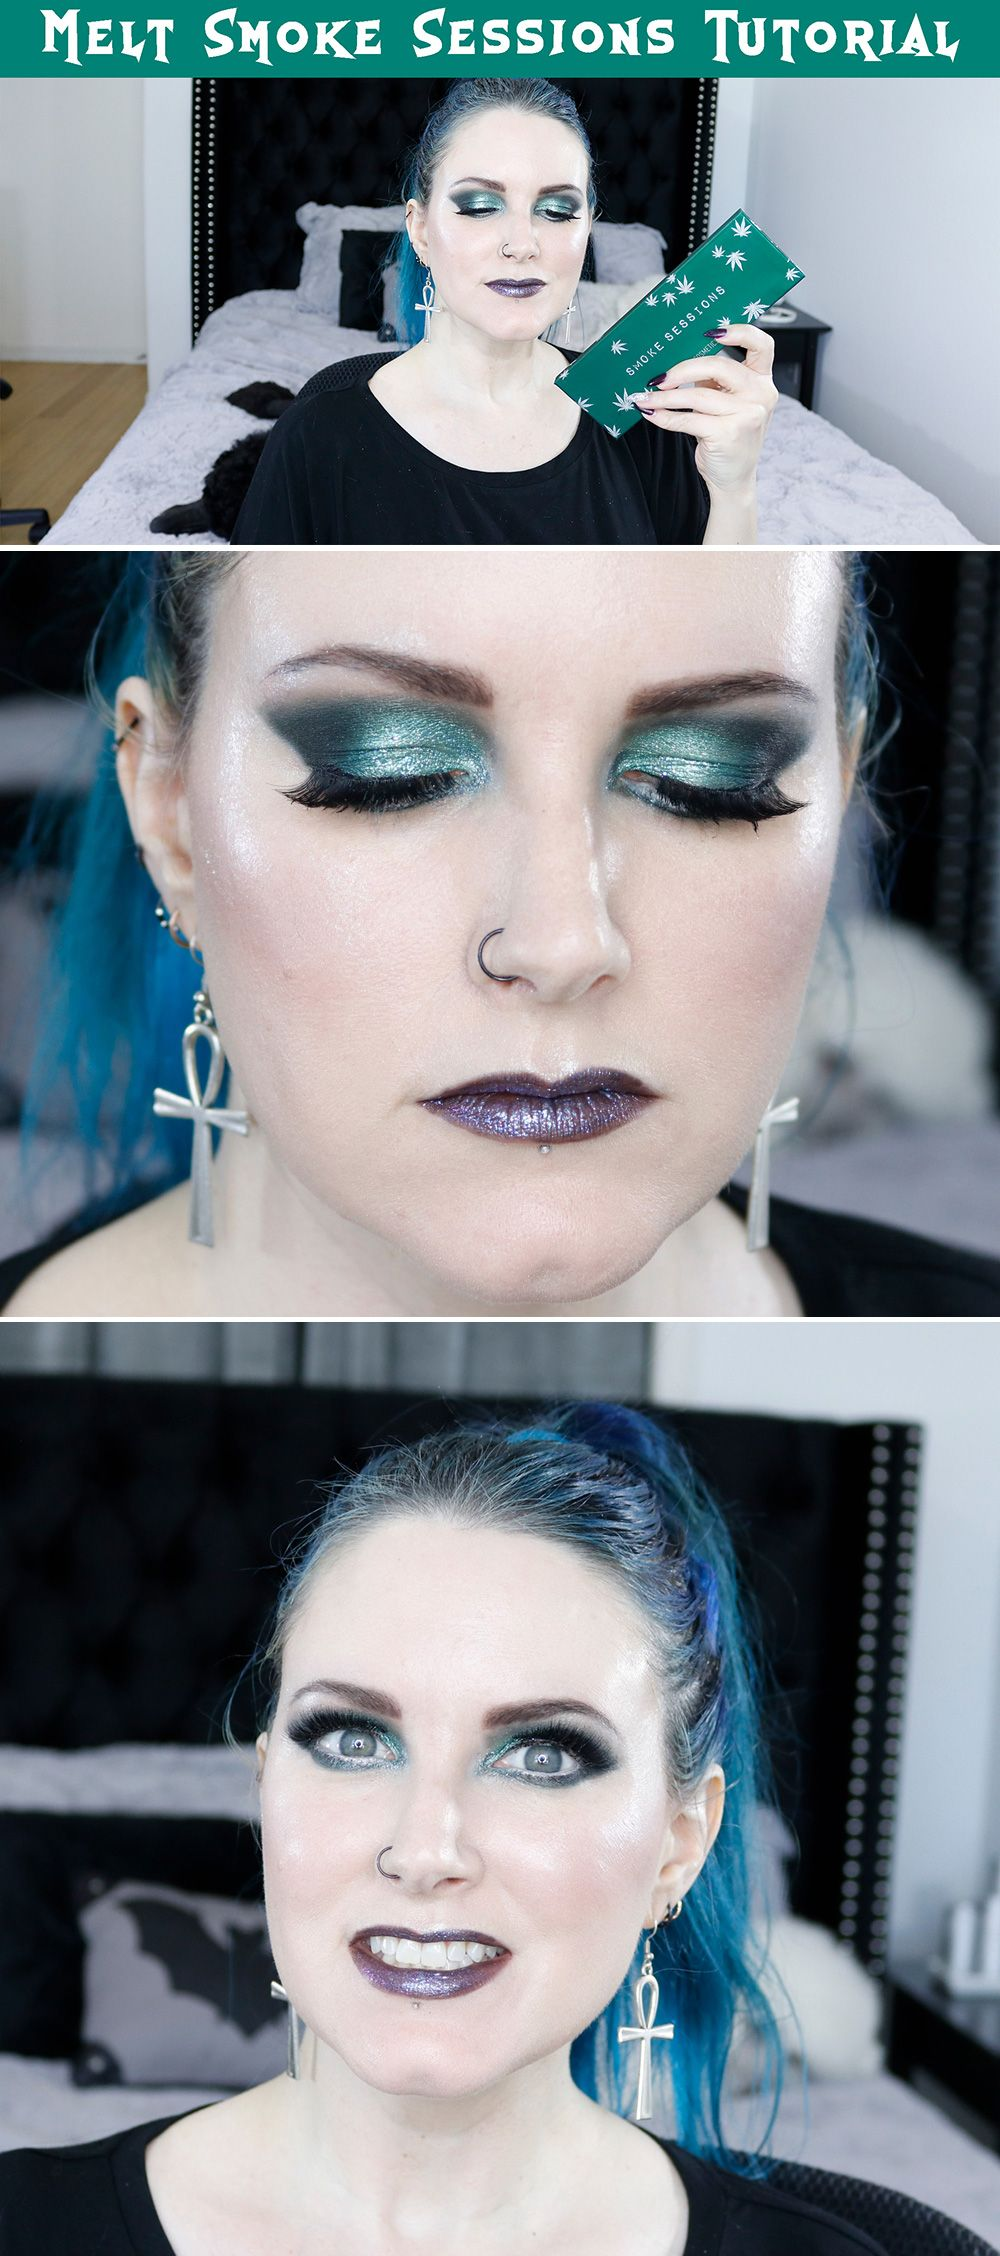 My second look in my smoke sessions video! Link is in my